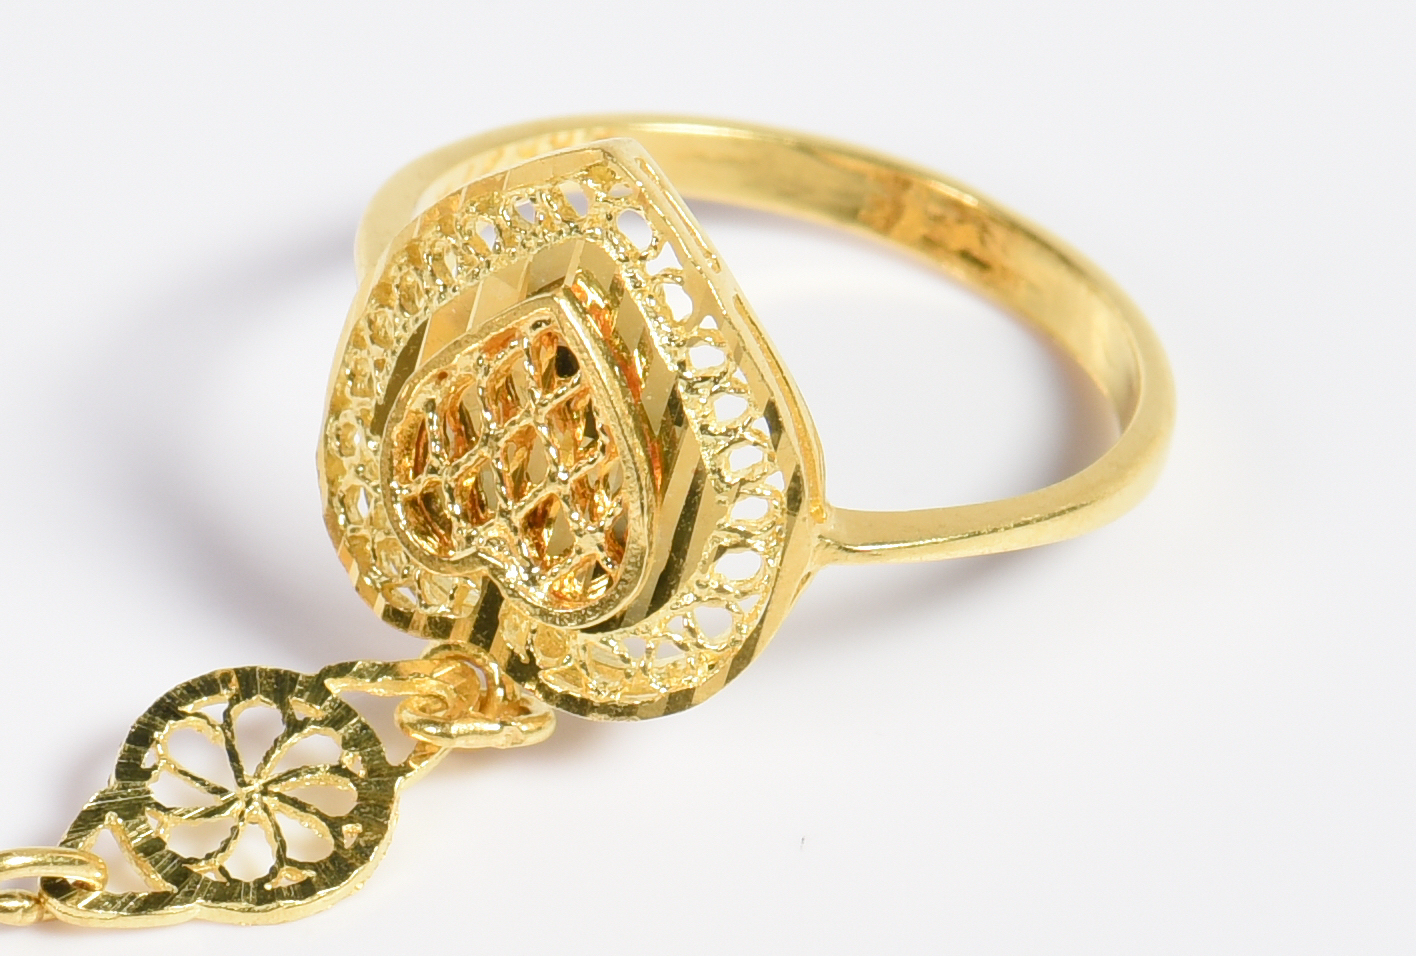 Lot 6: 21K Gold Hand Scarf Ring